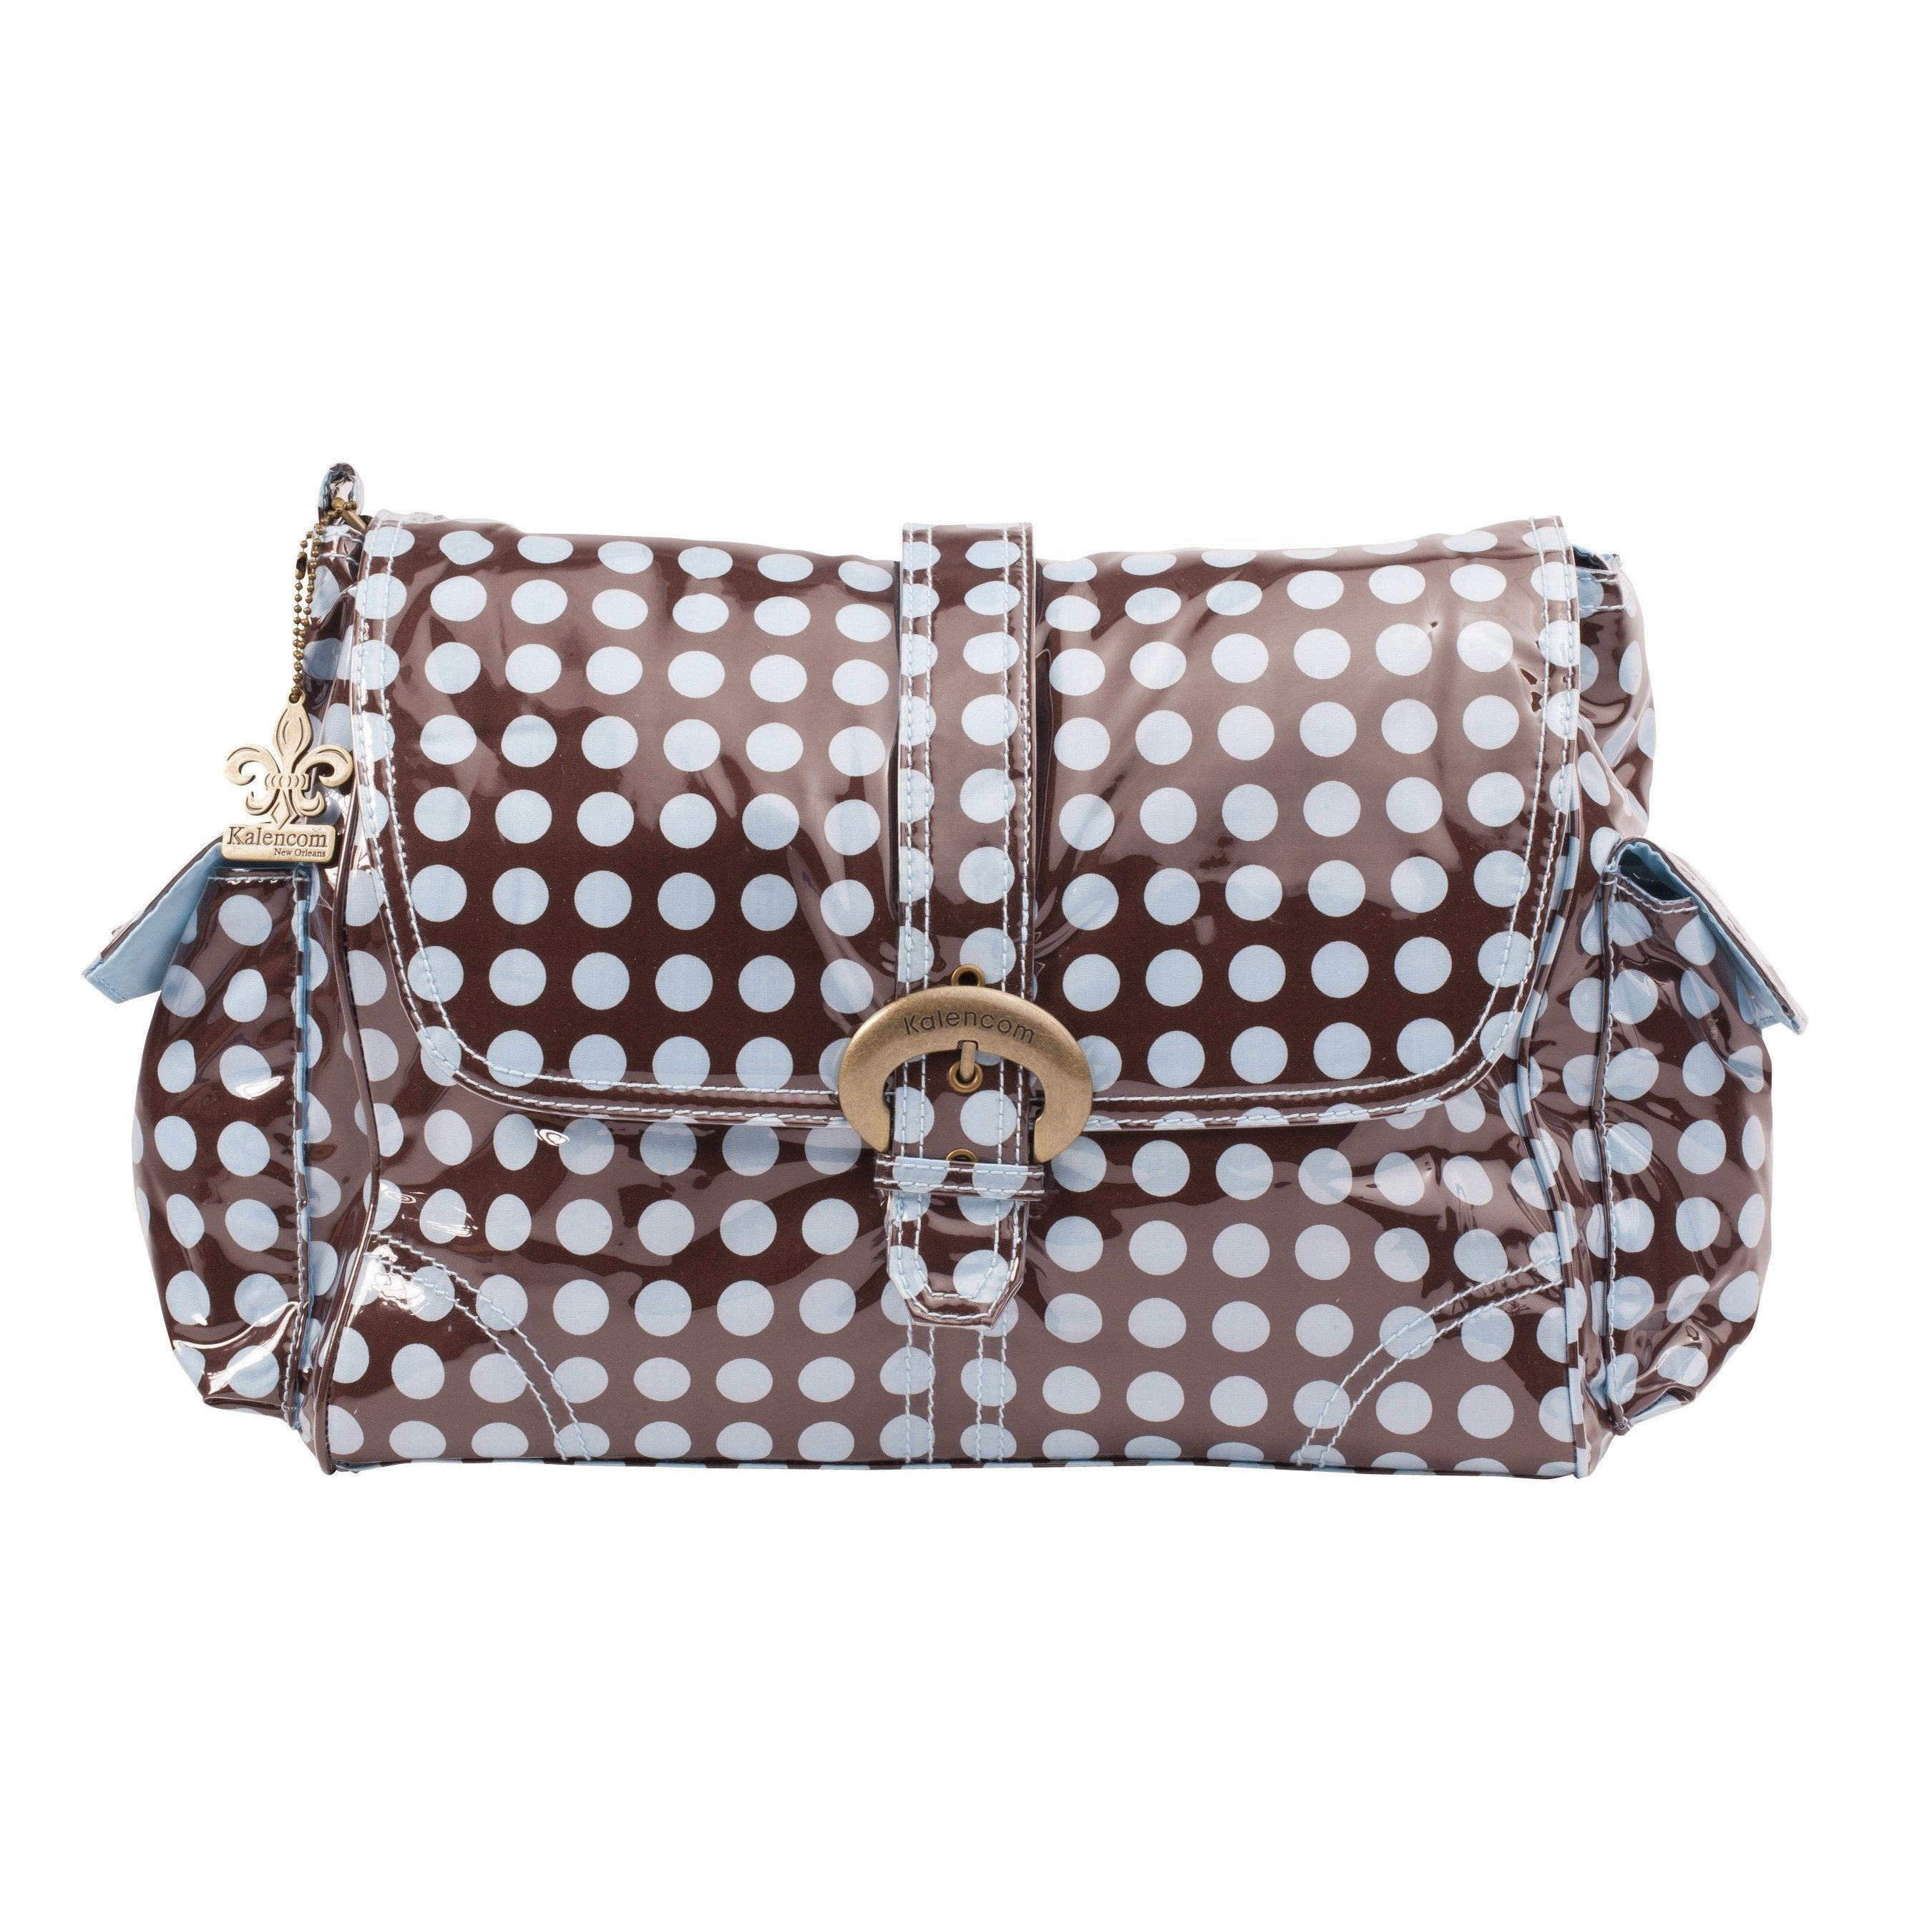 Heavenly Dots - Chocolate Blue Laminated Buckle Diaper Bag | Style 2960 - Kalencom-Diaper Bags-Jack and Jill Boutique